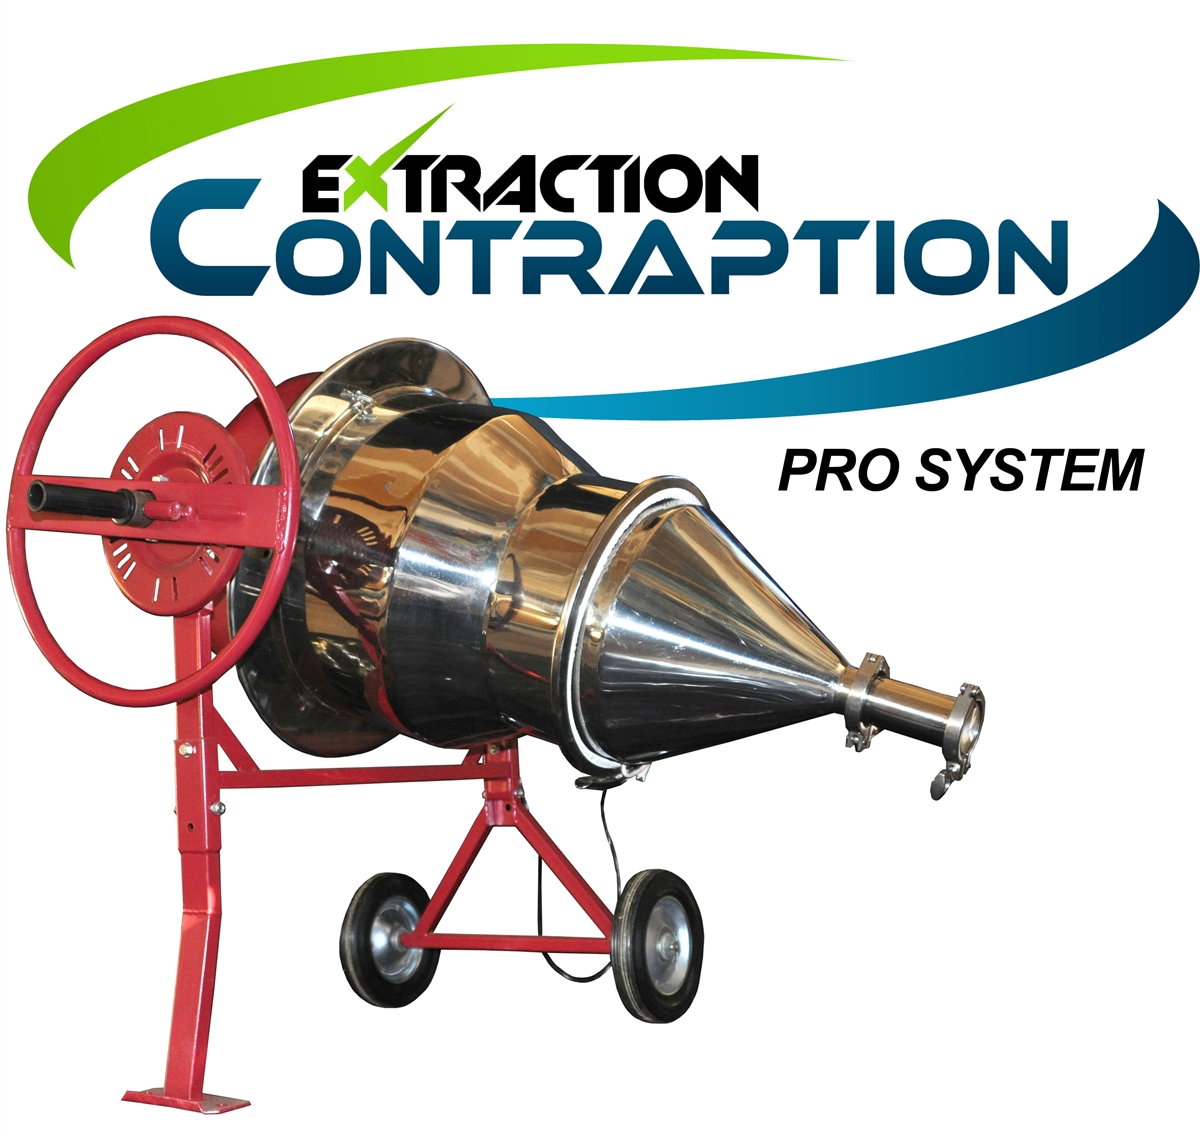 The Extraction Contraption Pro System is constructed of high quality stainless steel, and has an optional compactor so you can process and package your plant extraction quickly and easily.